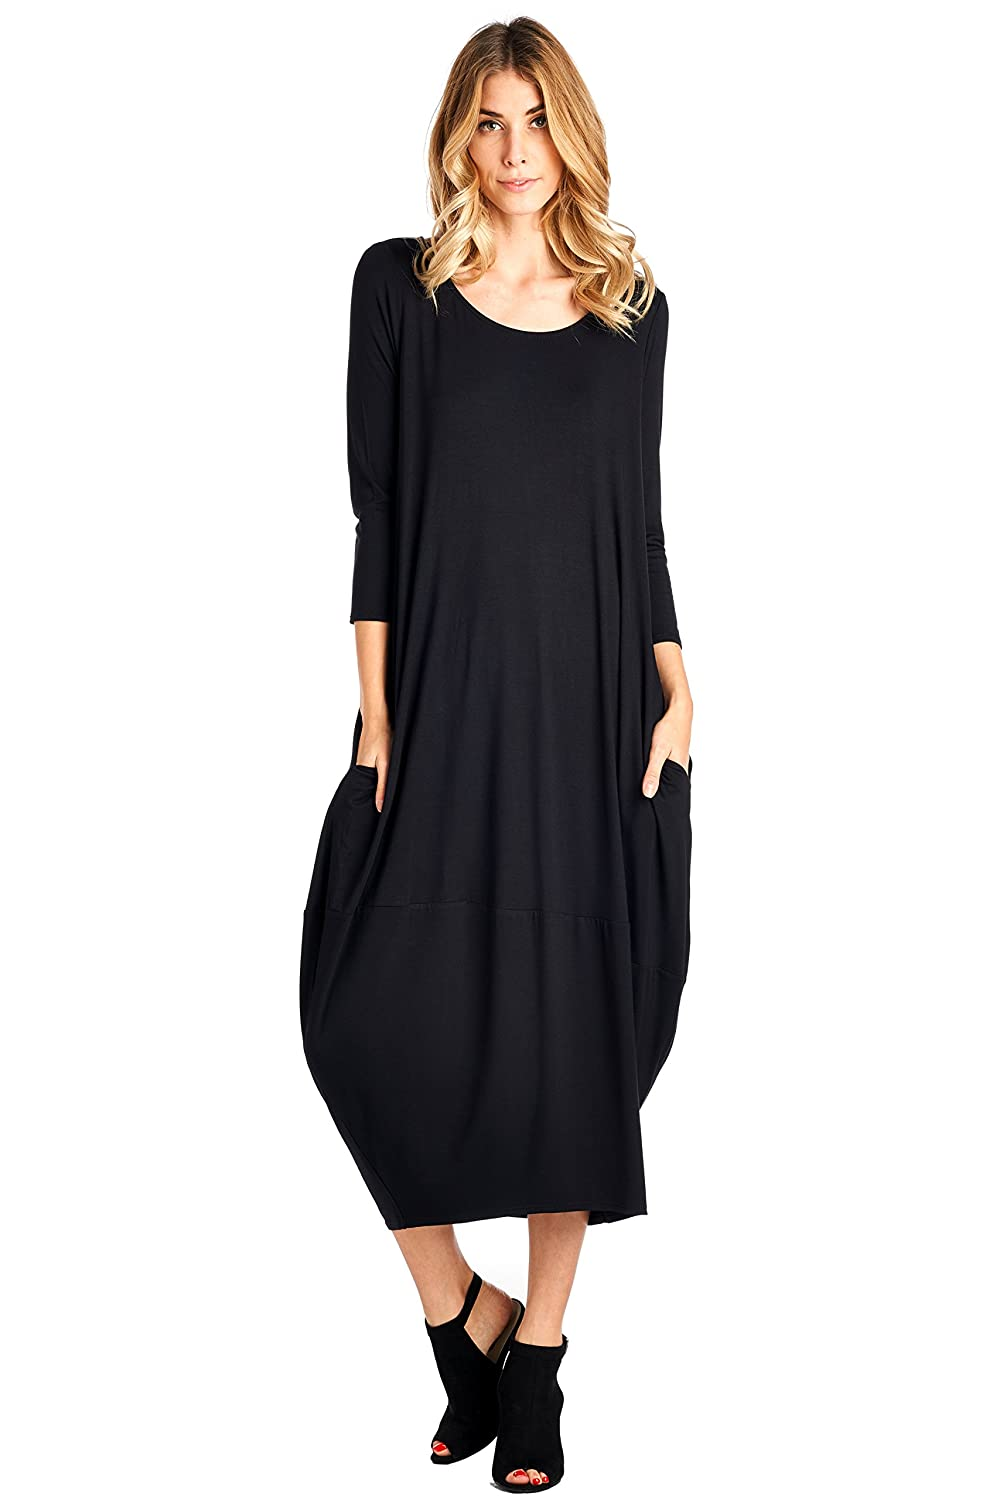 64d5418cccec 12 Ami Solid 3/4 Sleeve Bubble Hem Pocket Midi Dress (S-3X) - Made in USA  at Amazon Women's Clothing store: